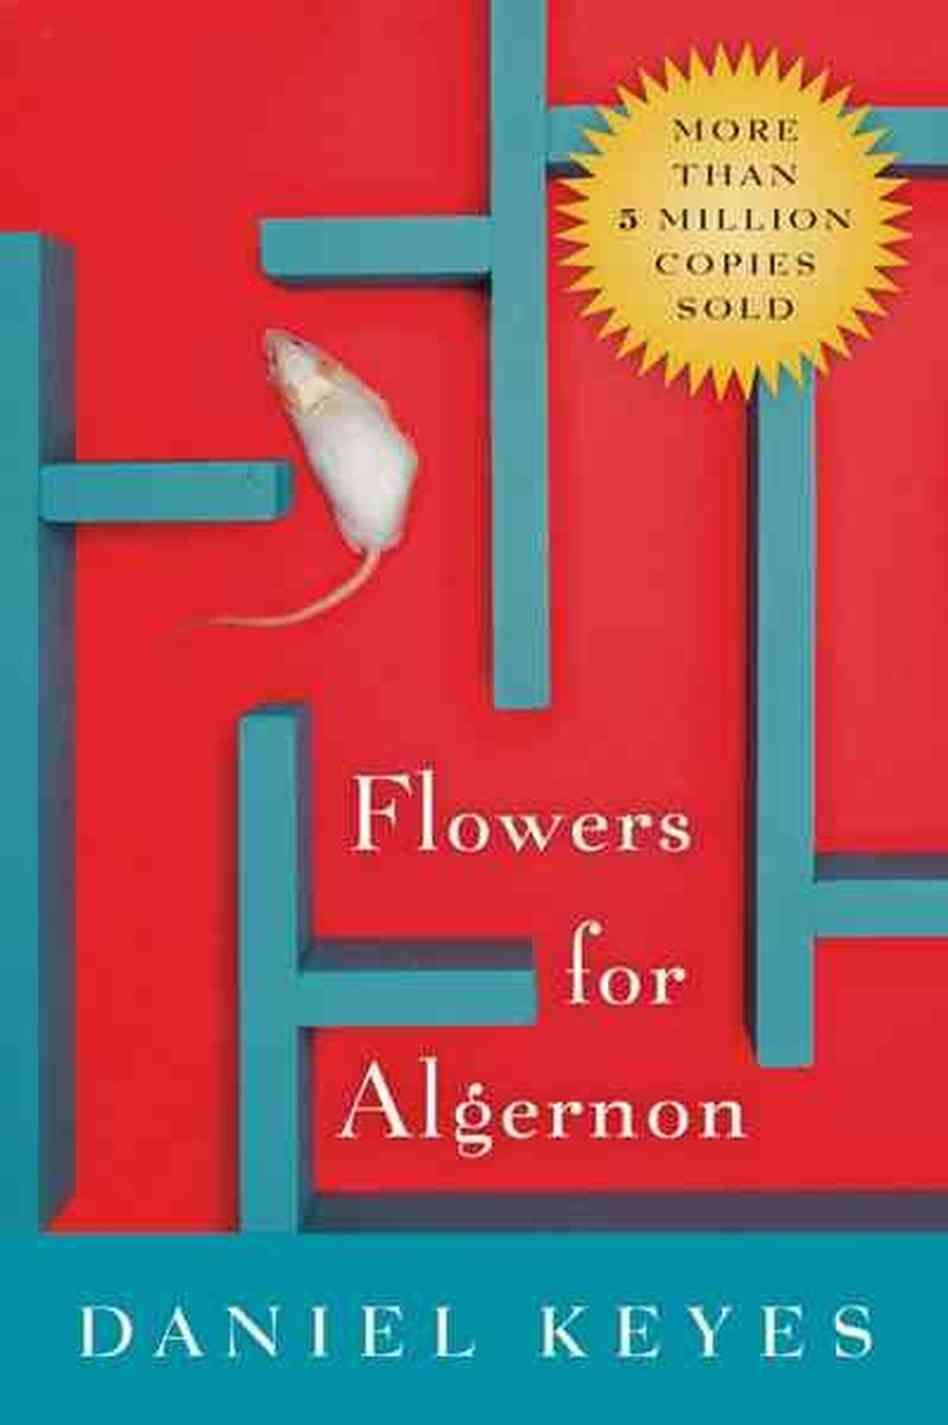 Flowers for algernon by daniel keyes book lists recommended flowers for algernon by daniel keyes fandeluxe Images